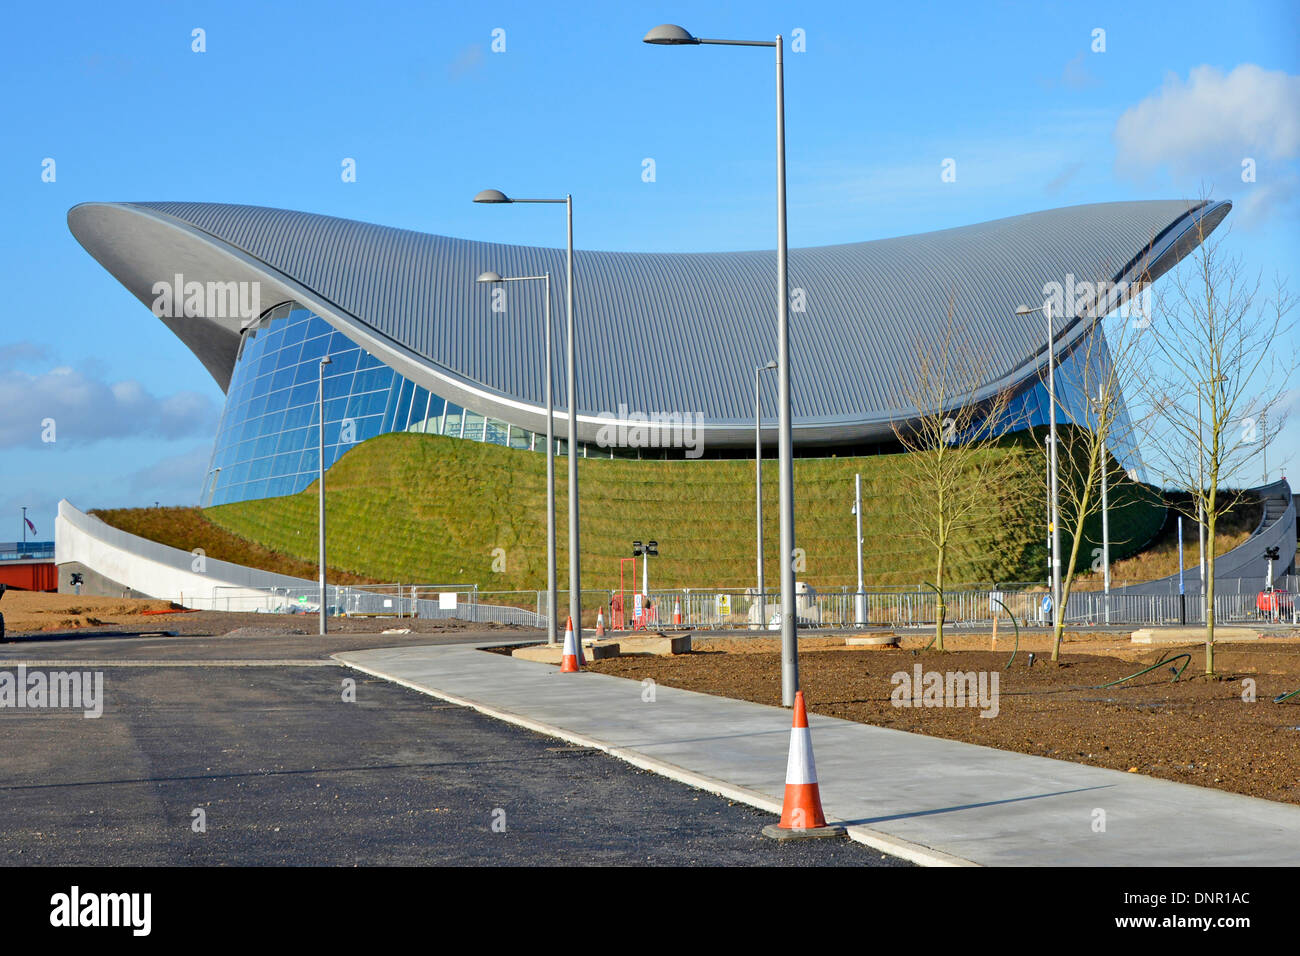 London aquatics centre events gallery - Queen elizabeth olympic park swimming pool ...